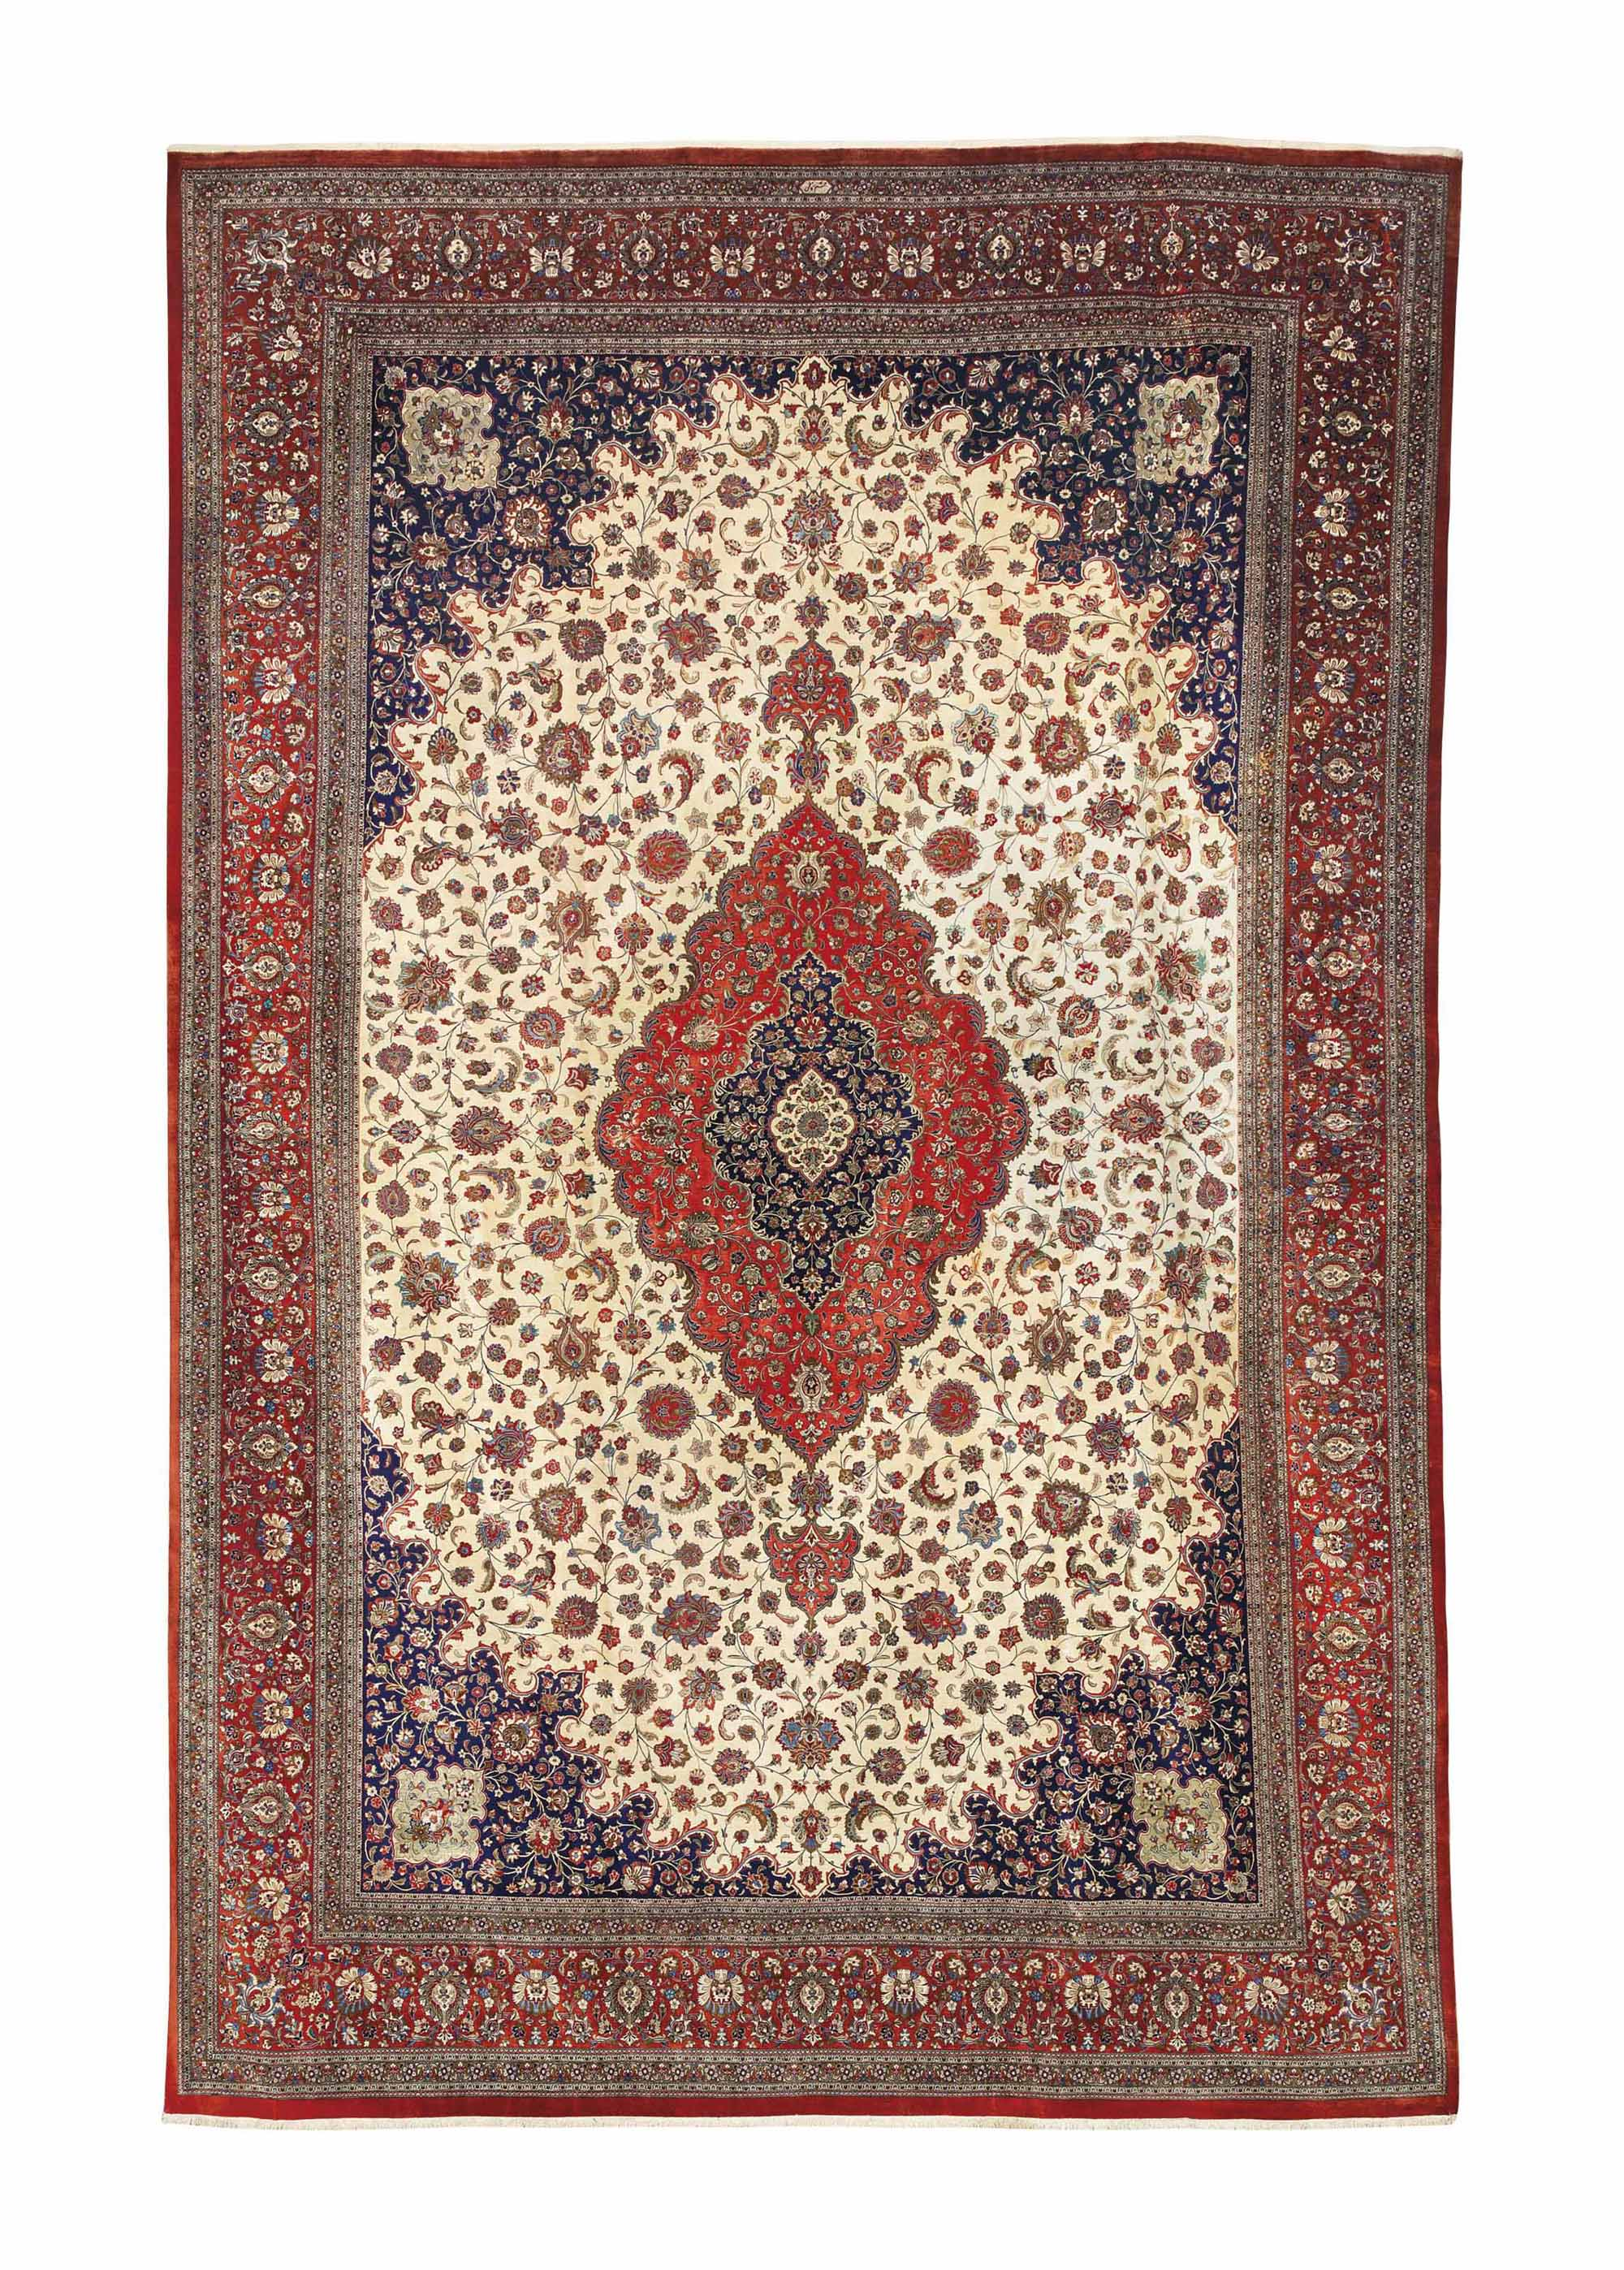 A SILK QUM CARPET